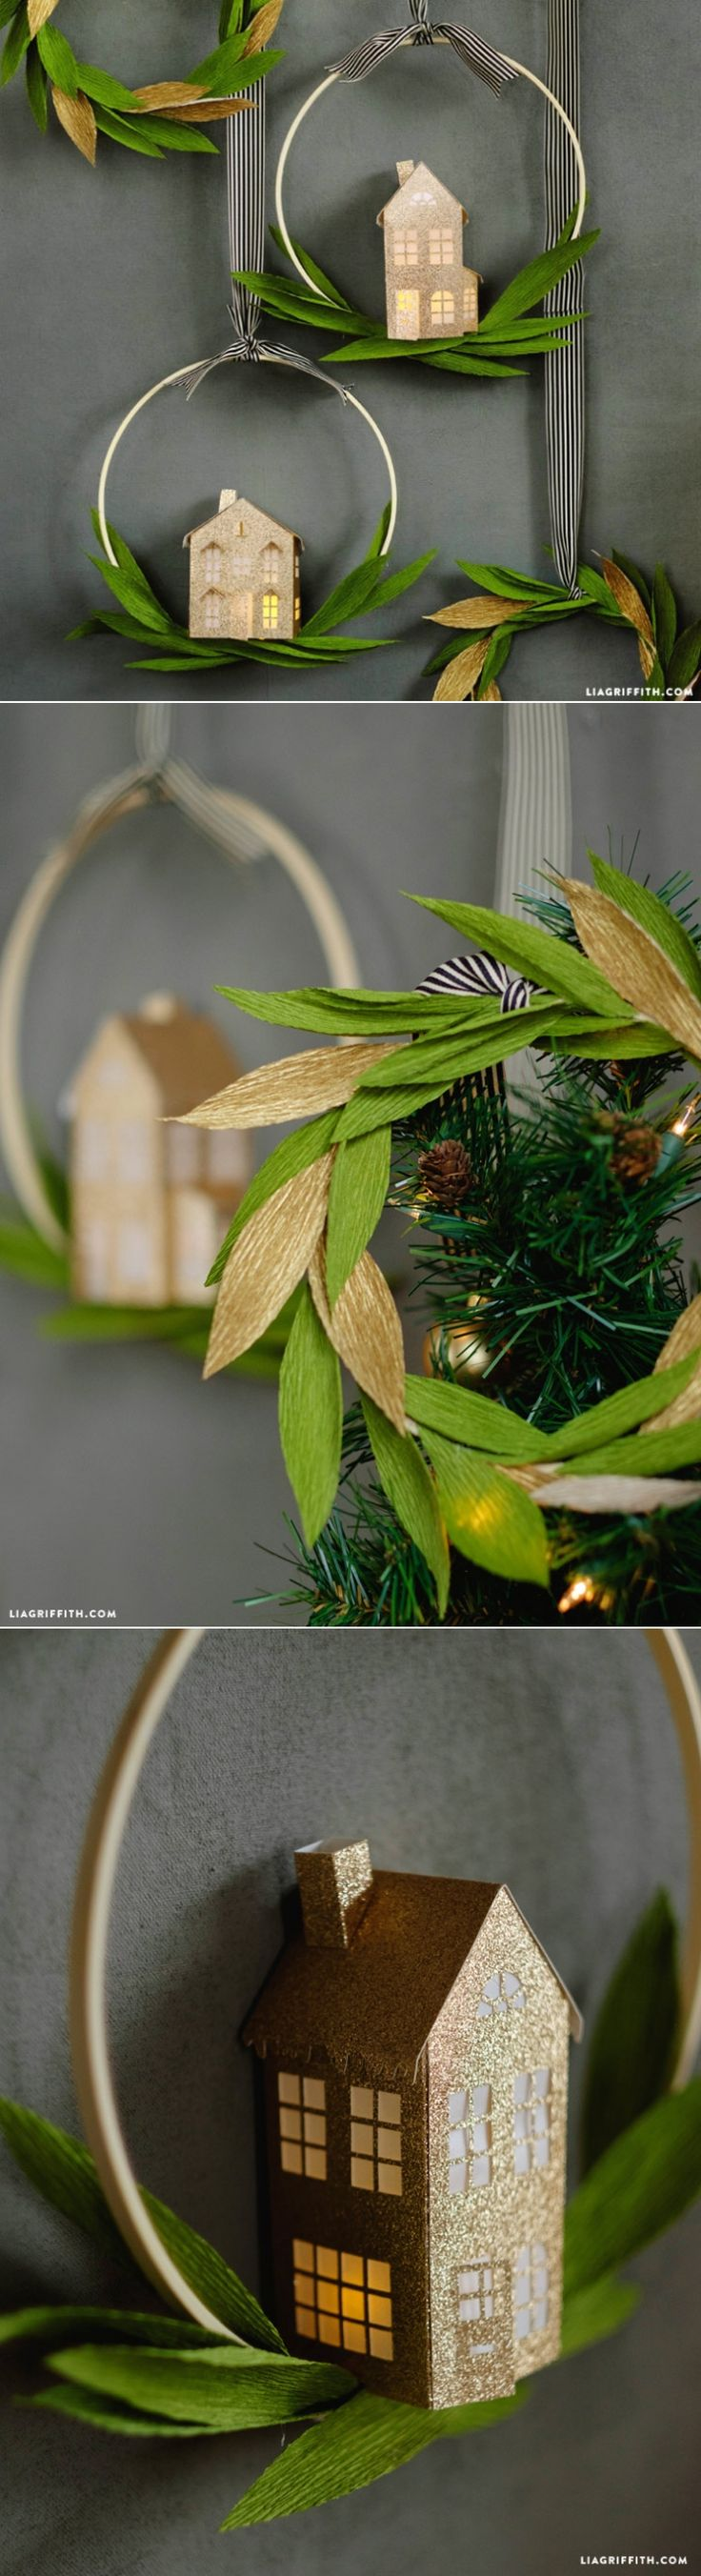 Make this laurel leaf wreath for the holidays. Full pattern and tutorial at LiaGriffith.com: